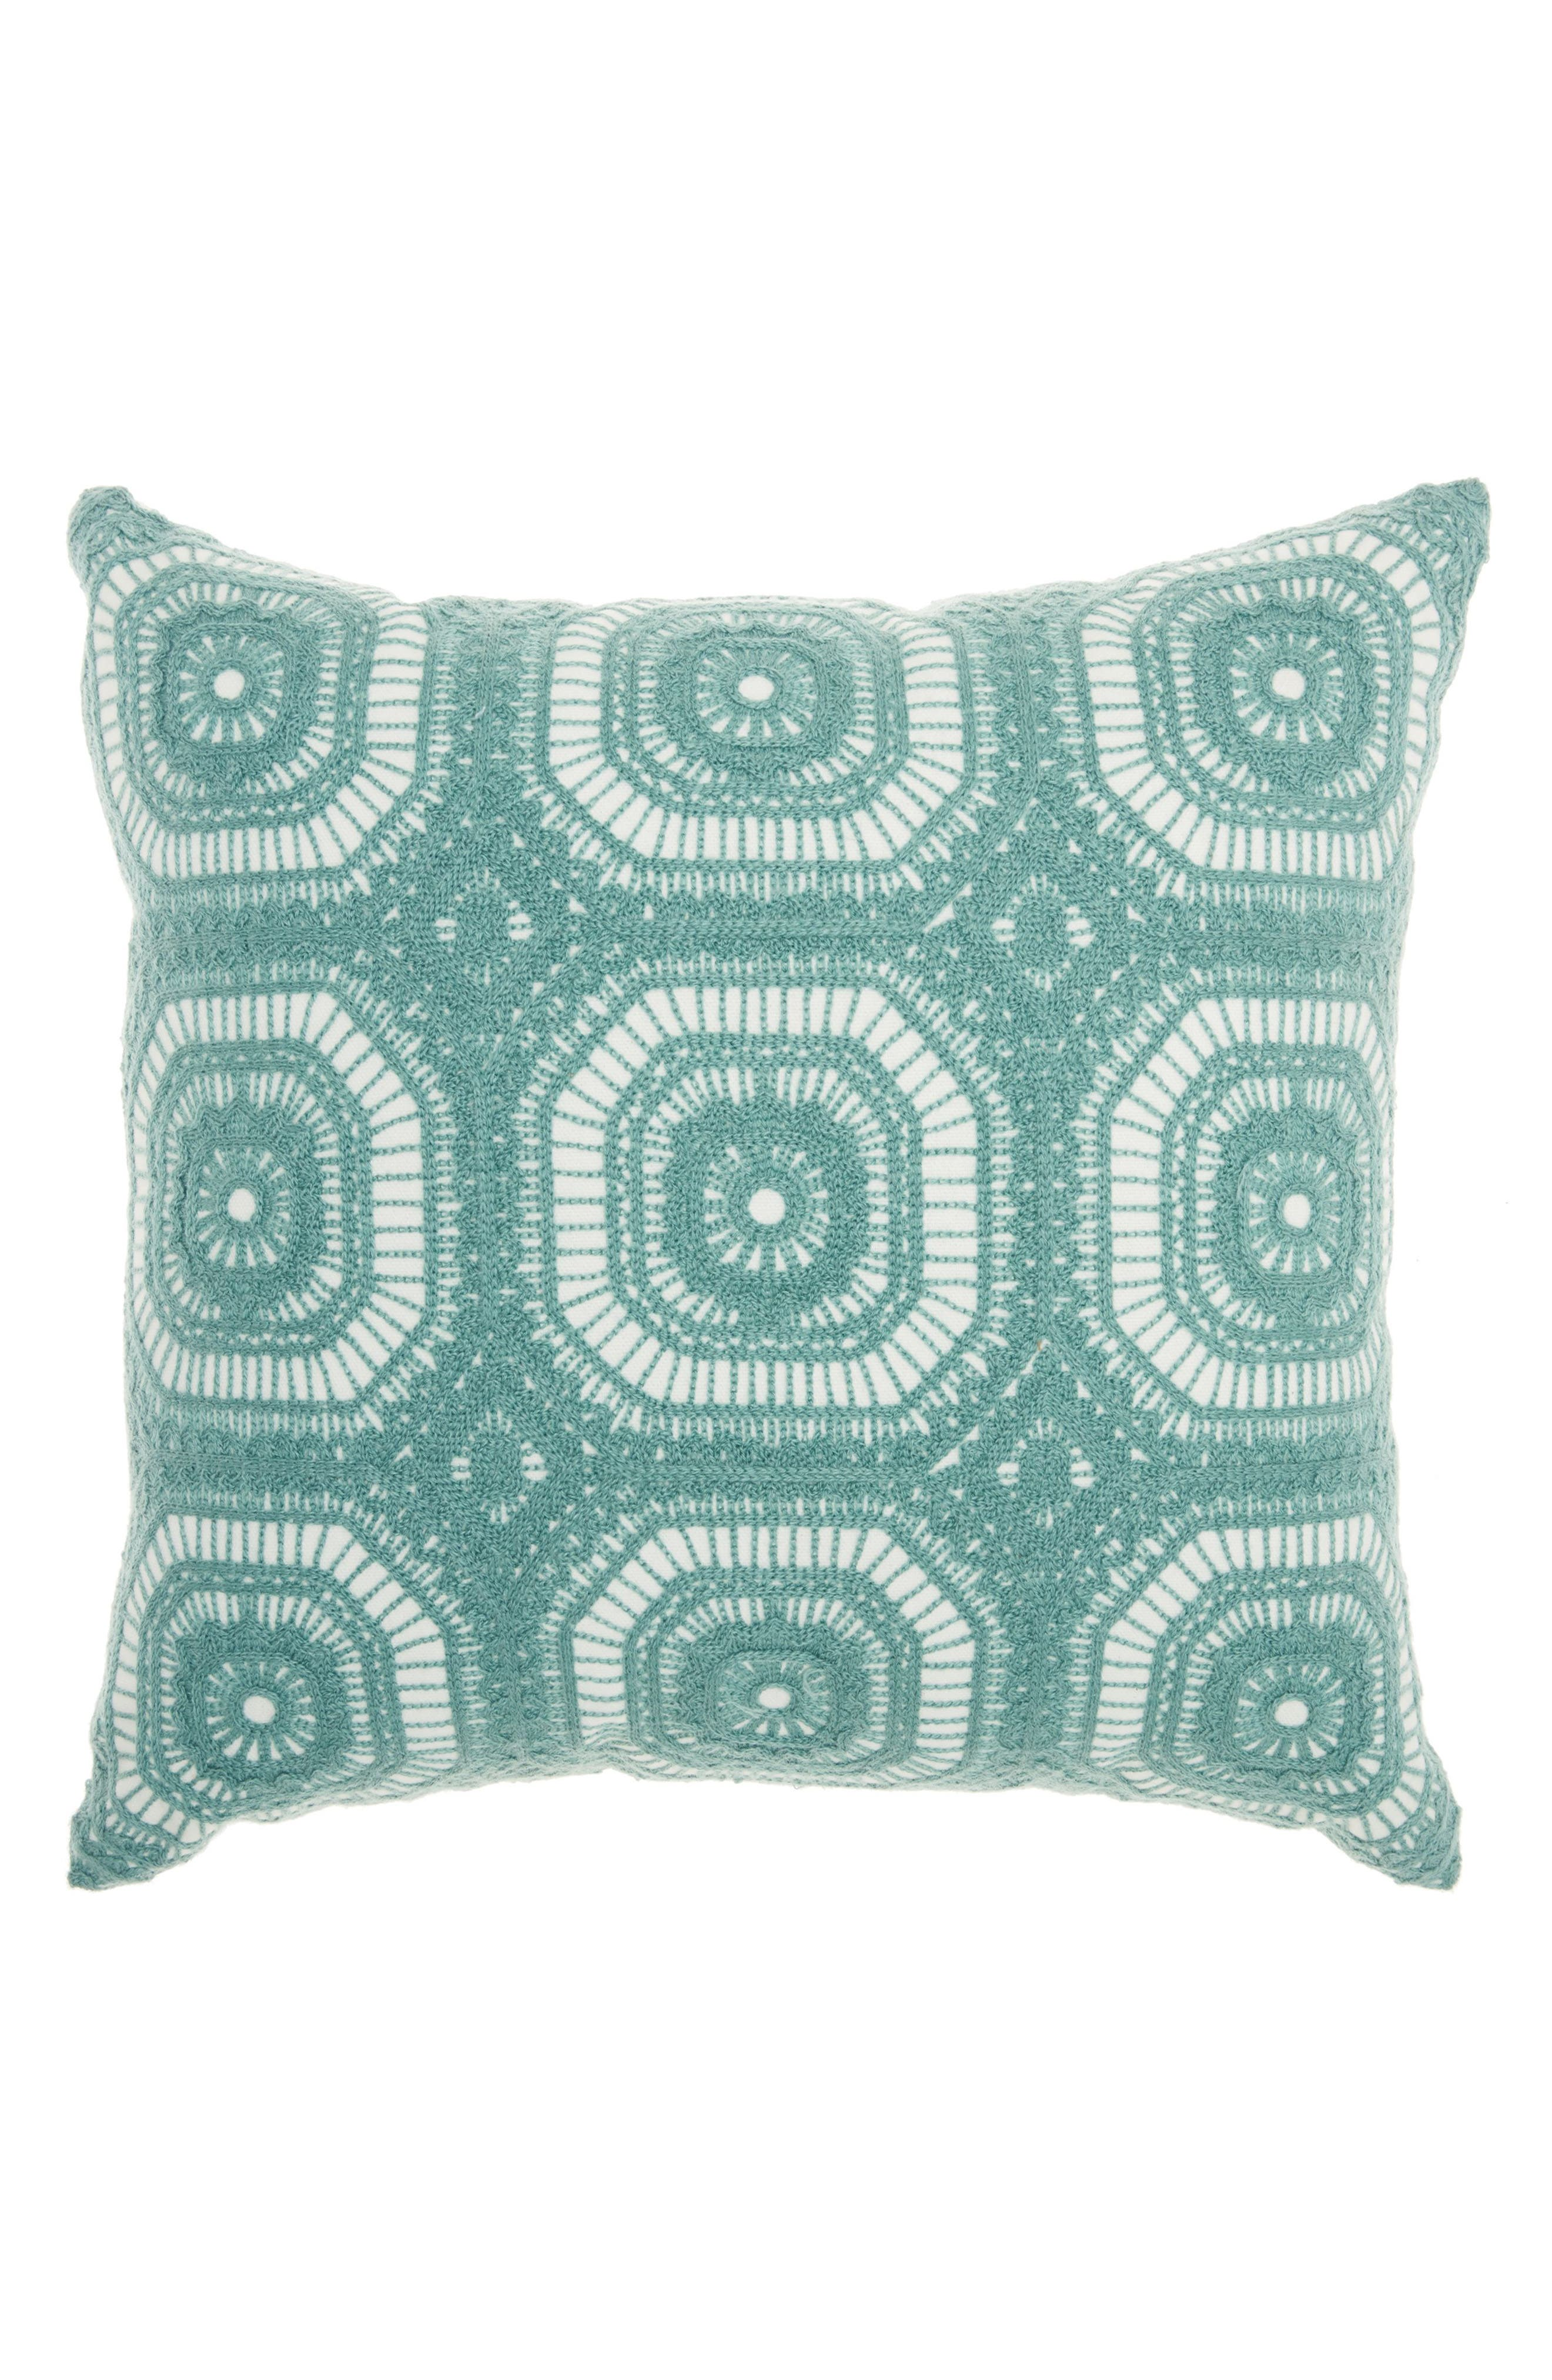 Tile Embroidered Accent Pillow,                             Main thumbnail 1, color,                             332